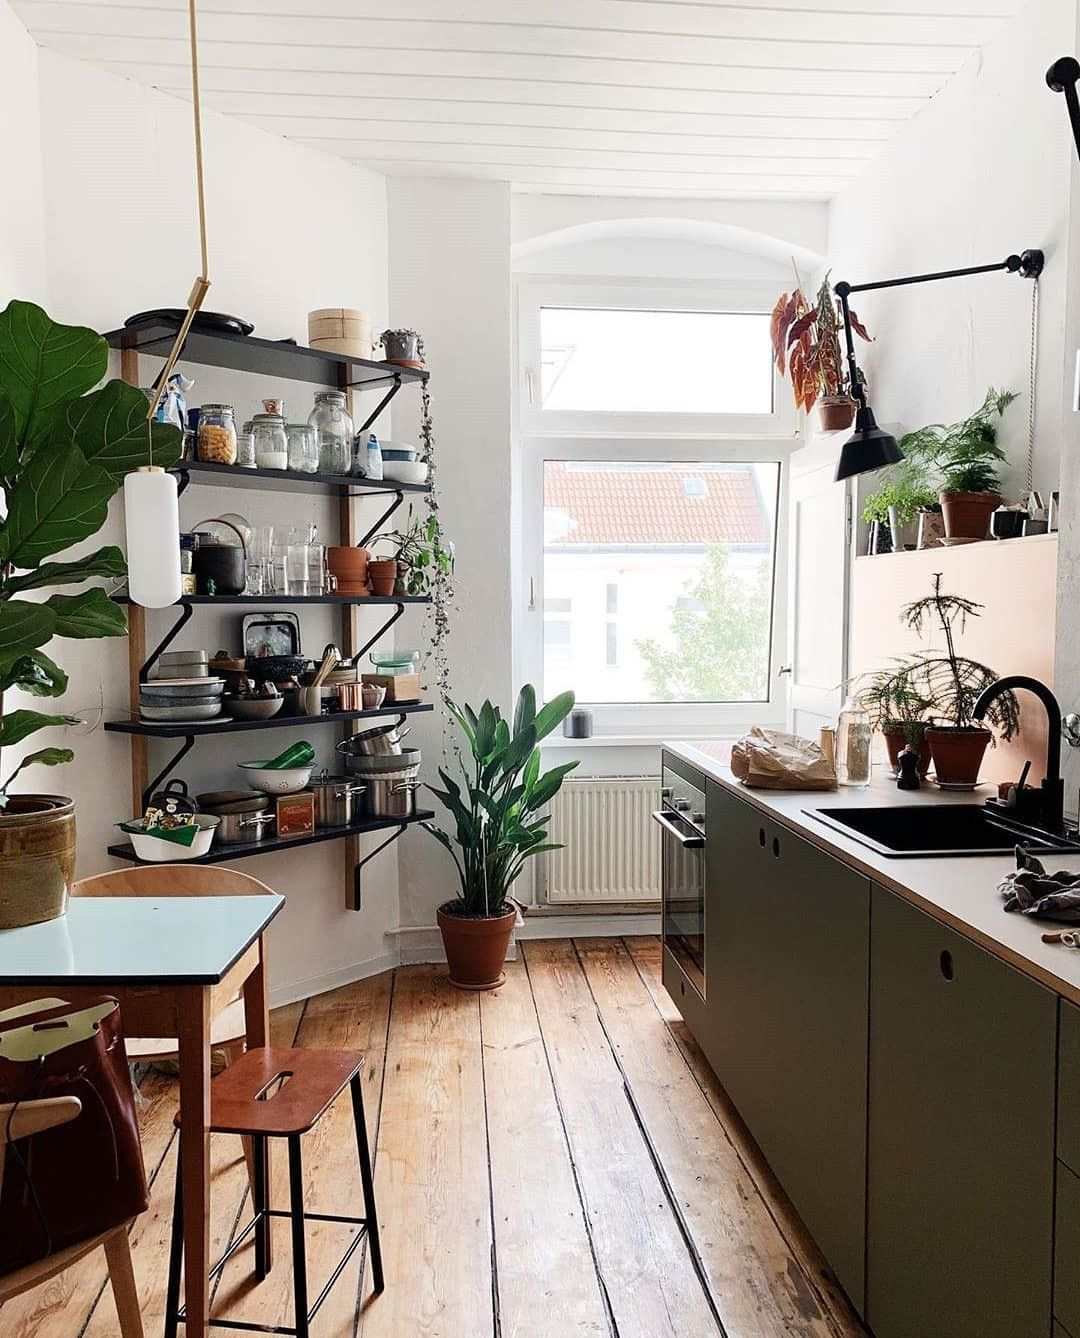 9 Best Small Kitchen Design Ideas You Never Feel Claustrophobic ...